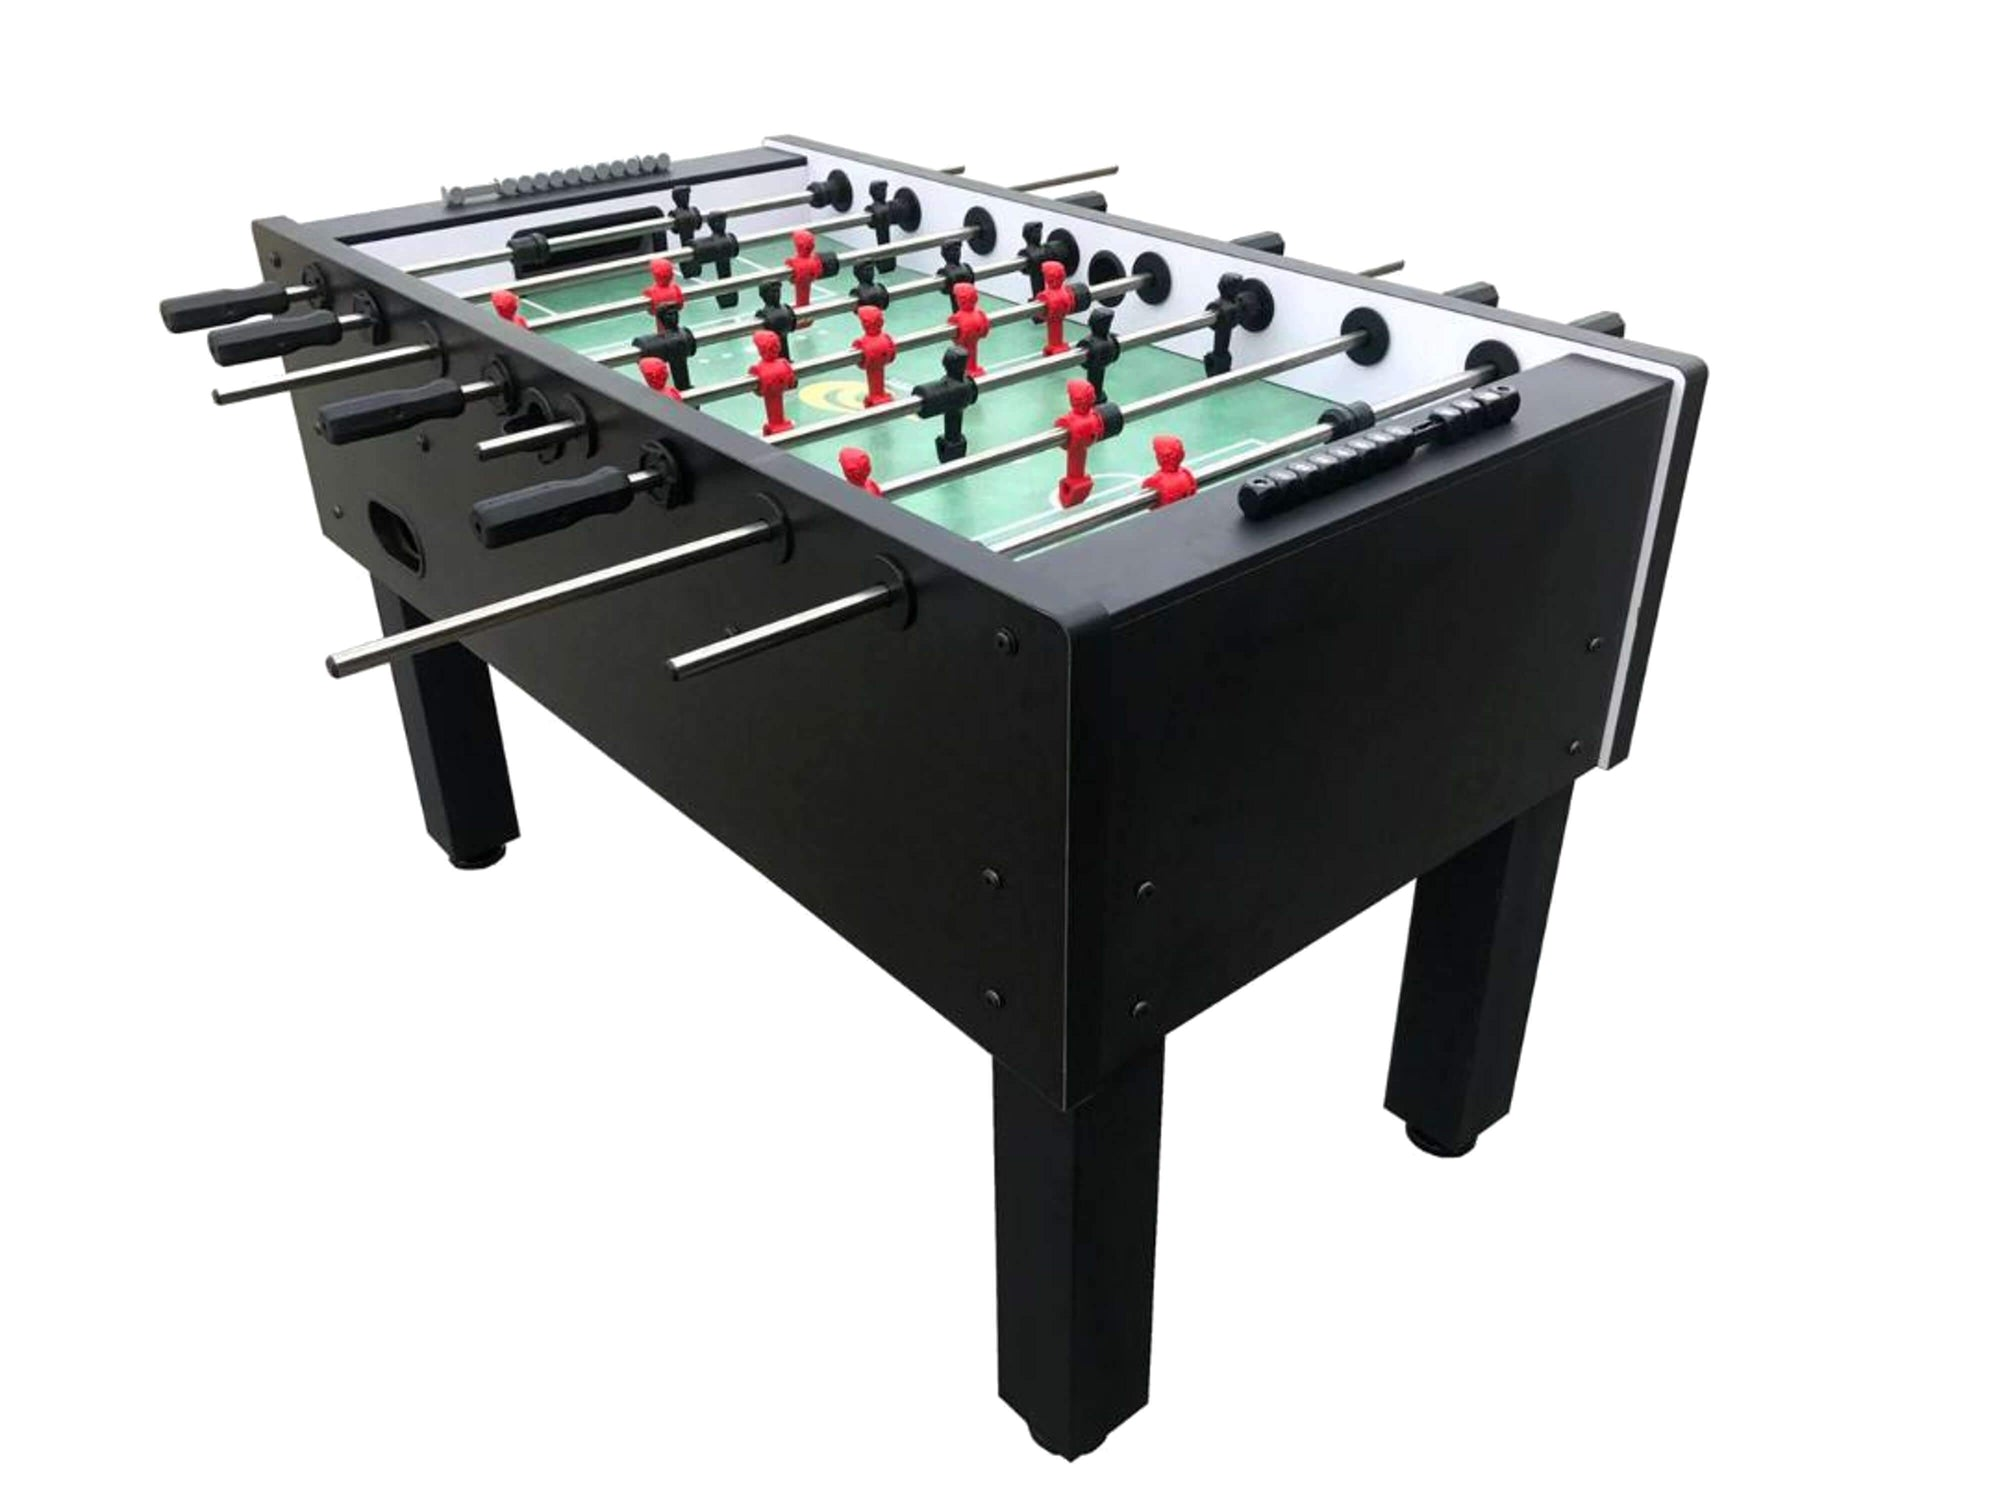 "Performance Games Sure Shot CA Foosball Table 56"" - Gaming Blaze"